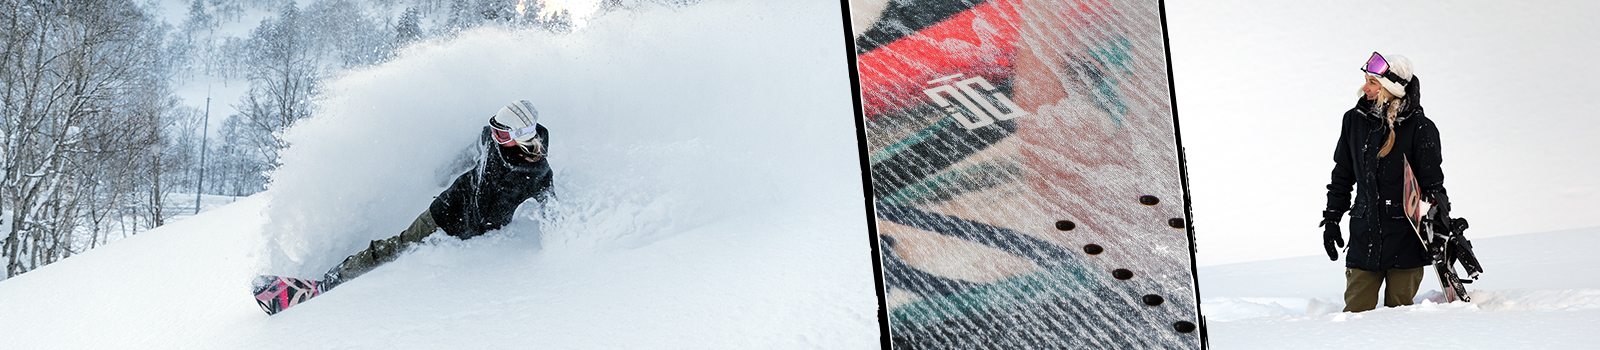 Womens Ski Beanies & Winter Hats from DC Shoes